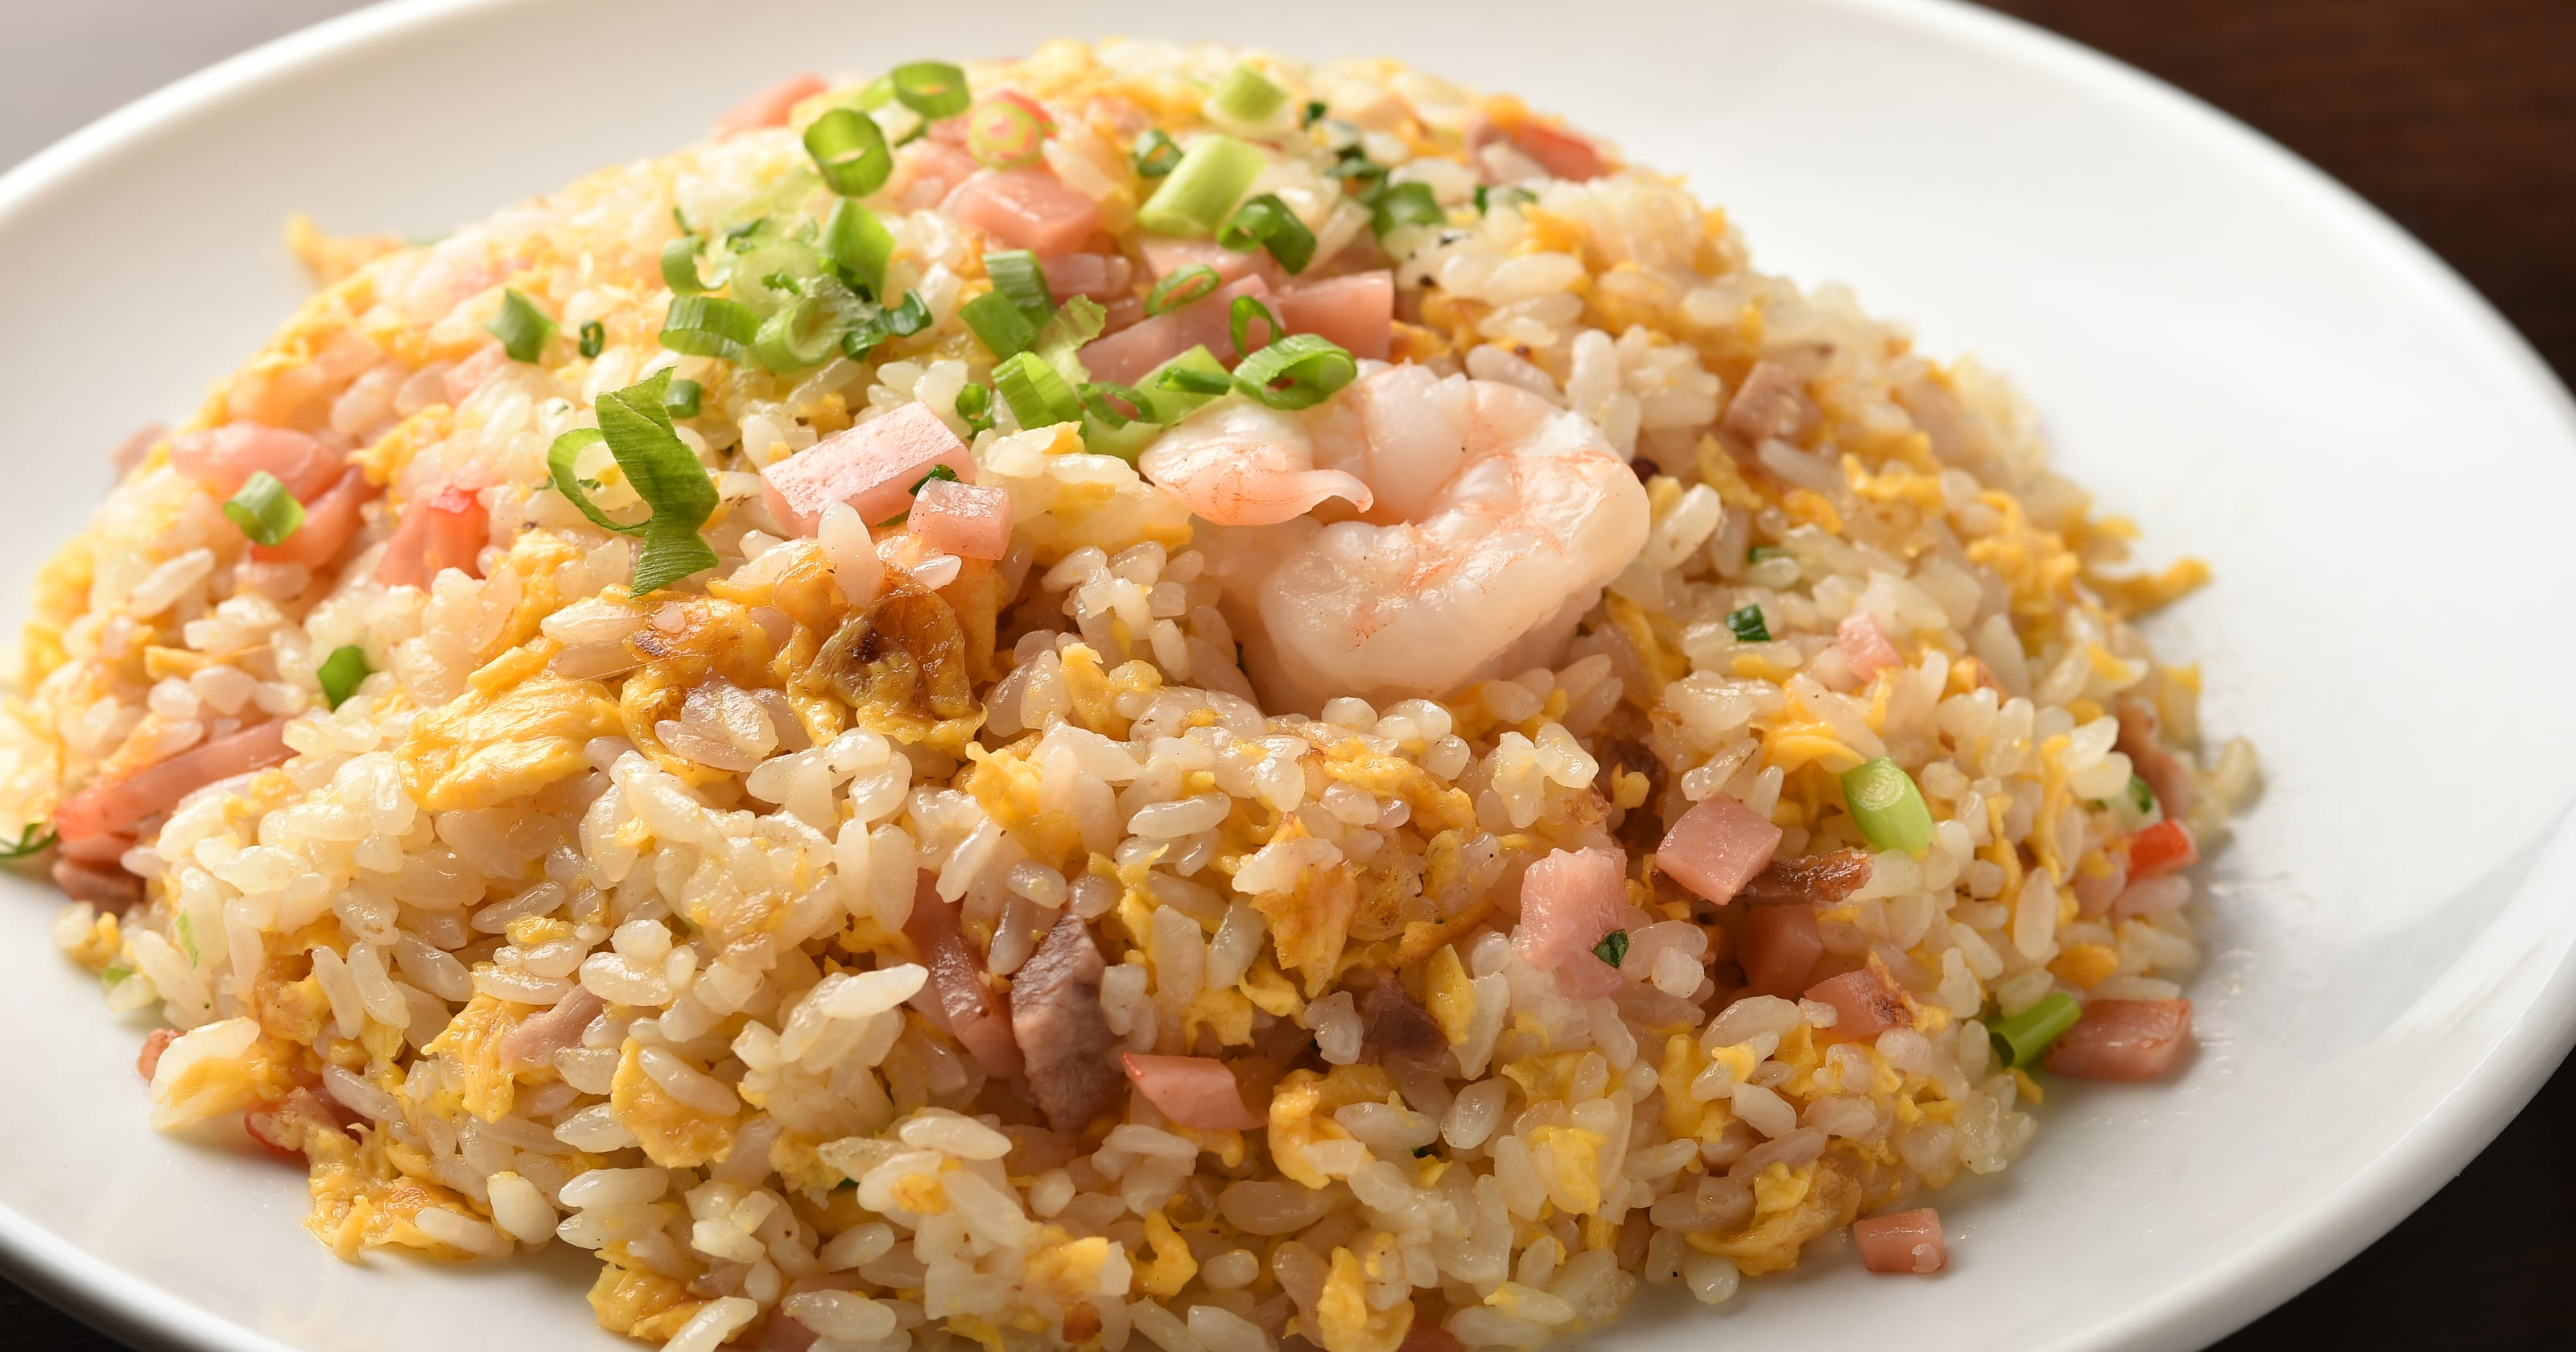 Fried rice syndrome: How leftover rice can give you food